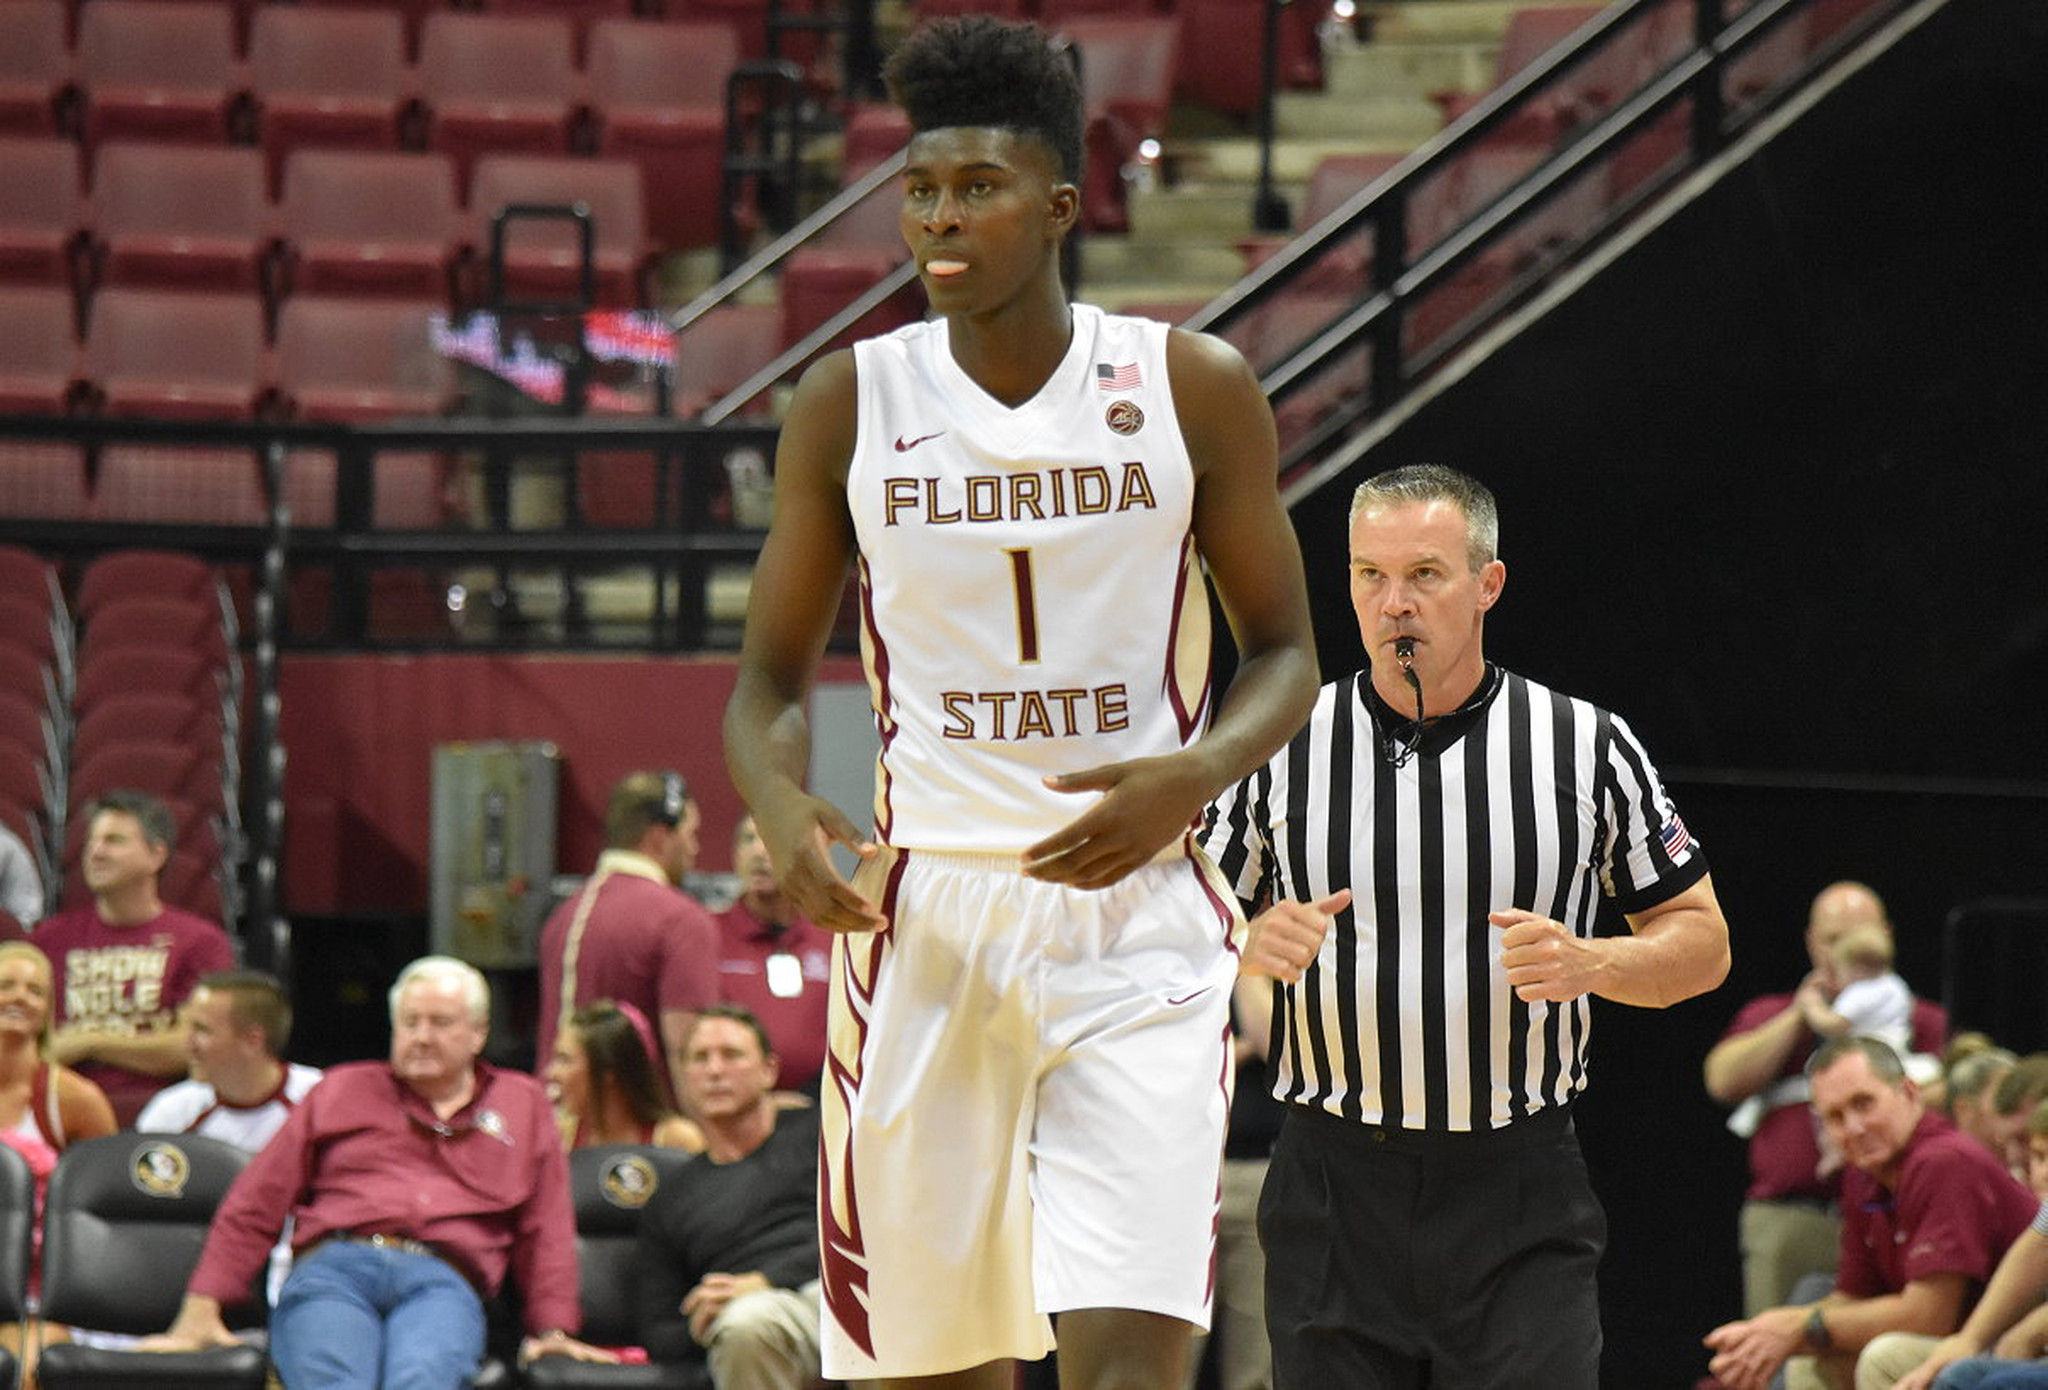 Os-sp-florida-state-top-detroit-mercy-20161120